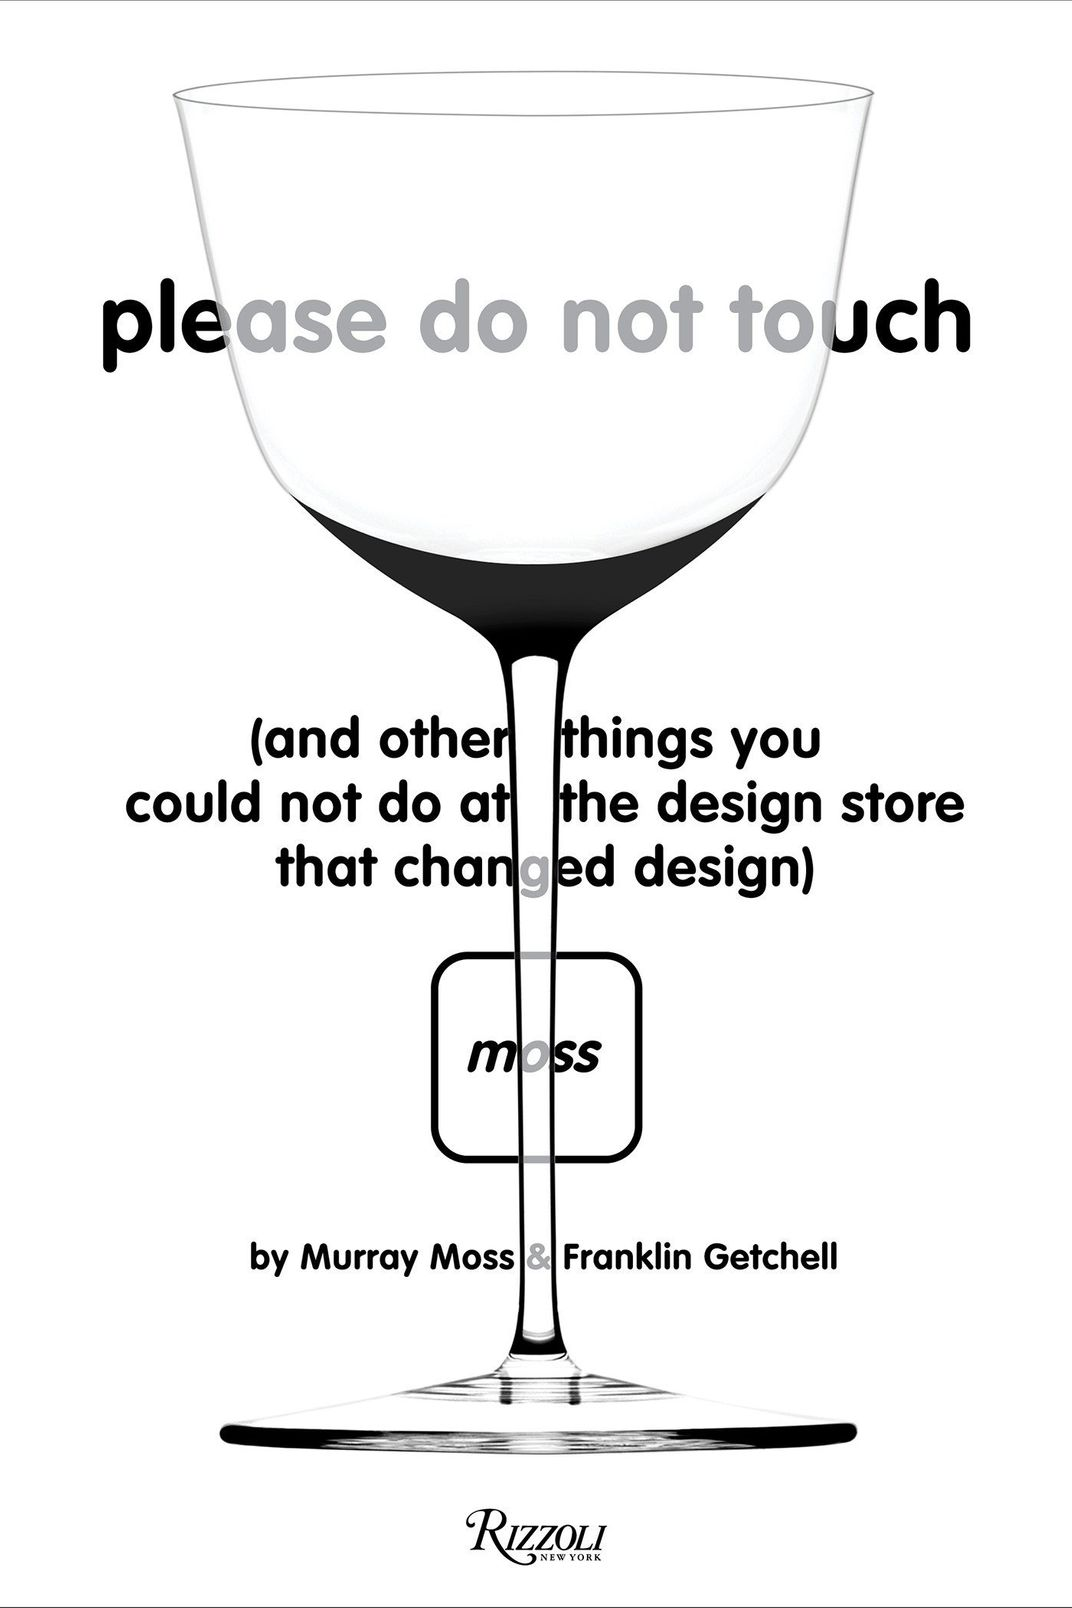 Please Do Not Touch: And Other Things You Couldn't Do at Moss the Design Store That Changed Design, by Murray Moss